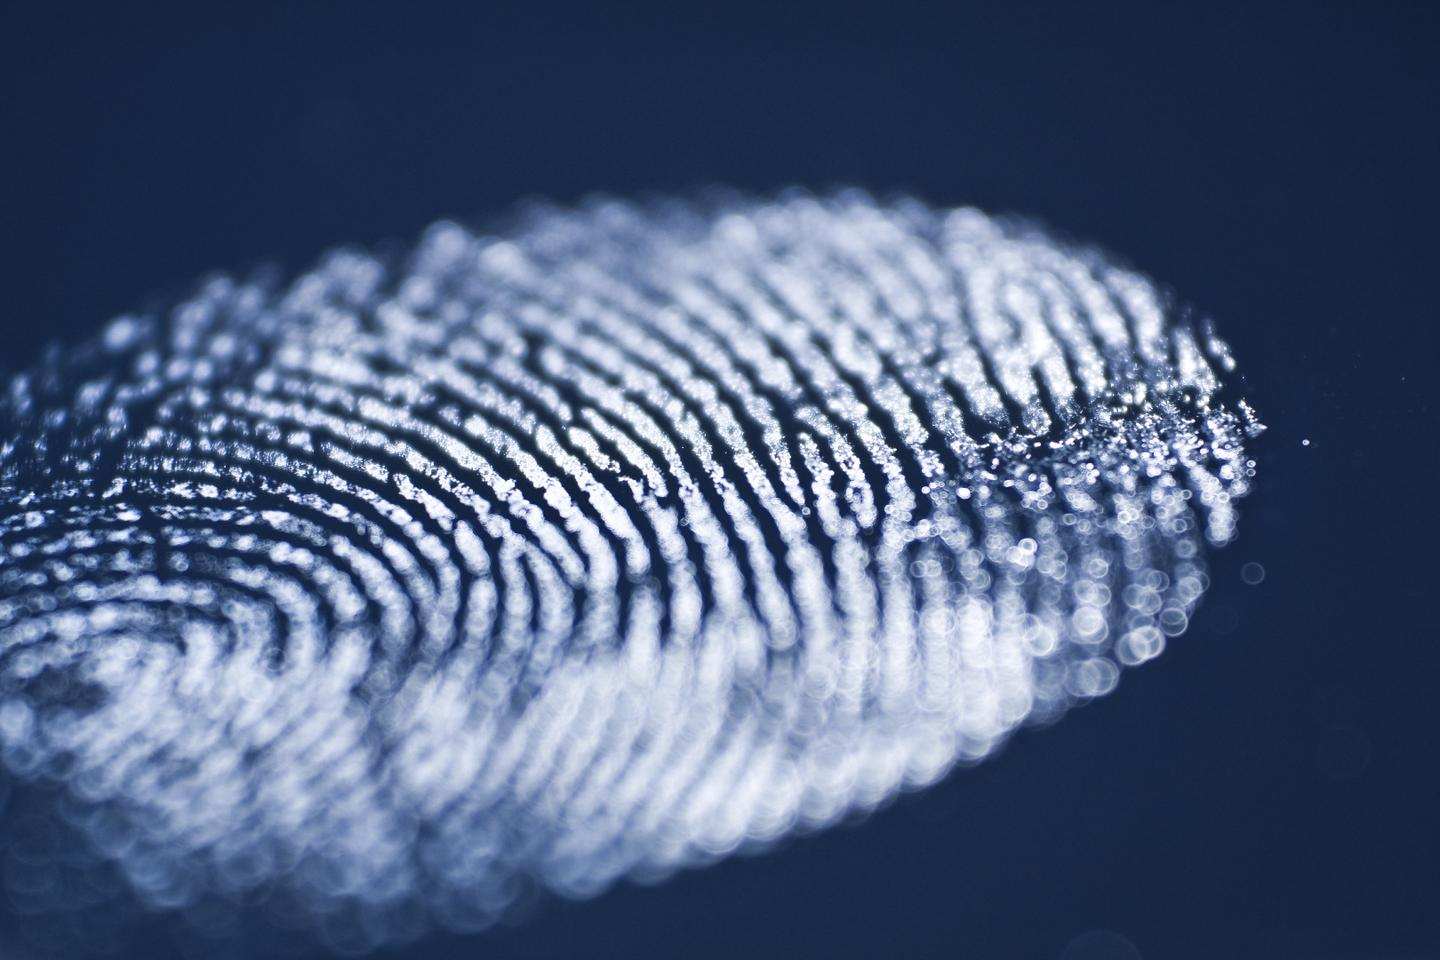 The technique involves the detection of chemicals in the fingerprint, which are given off when cocaine is used